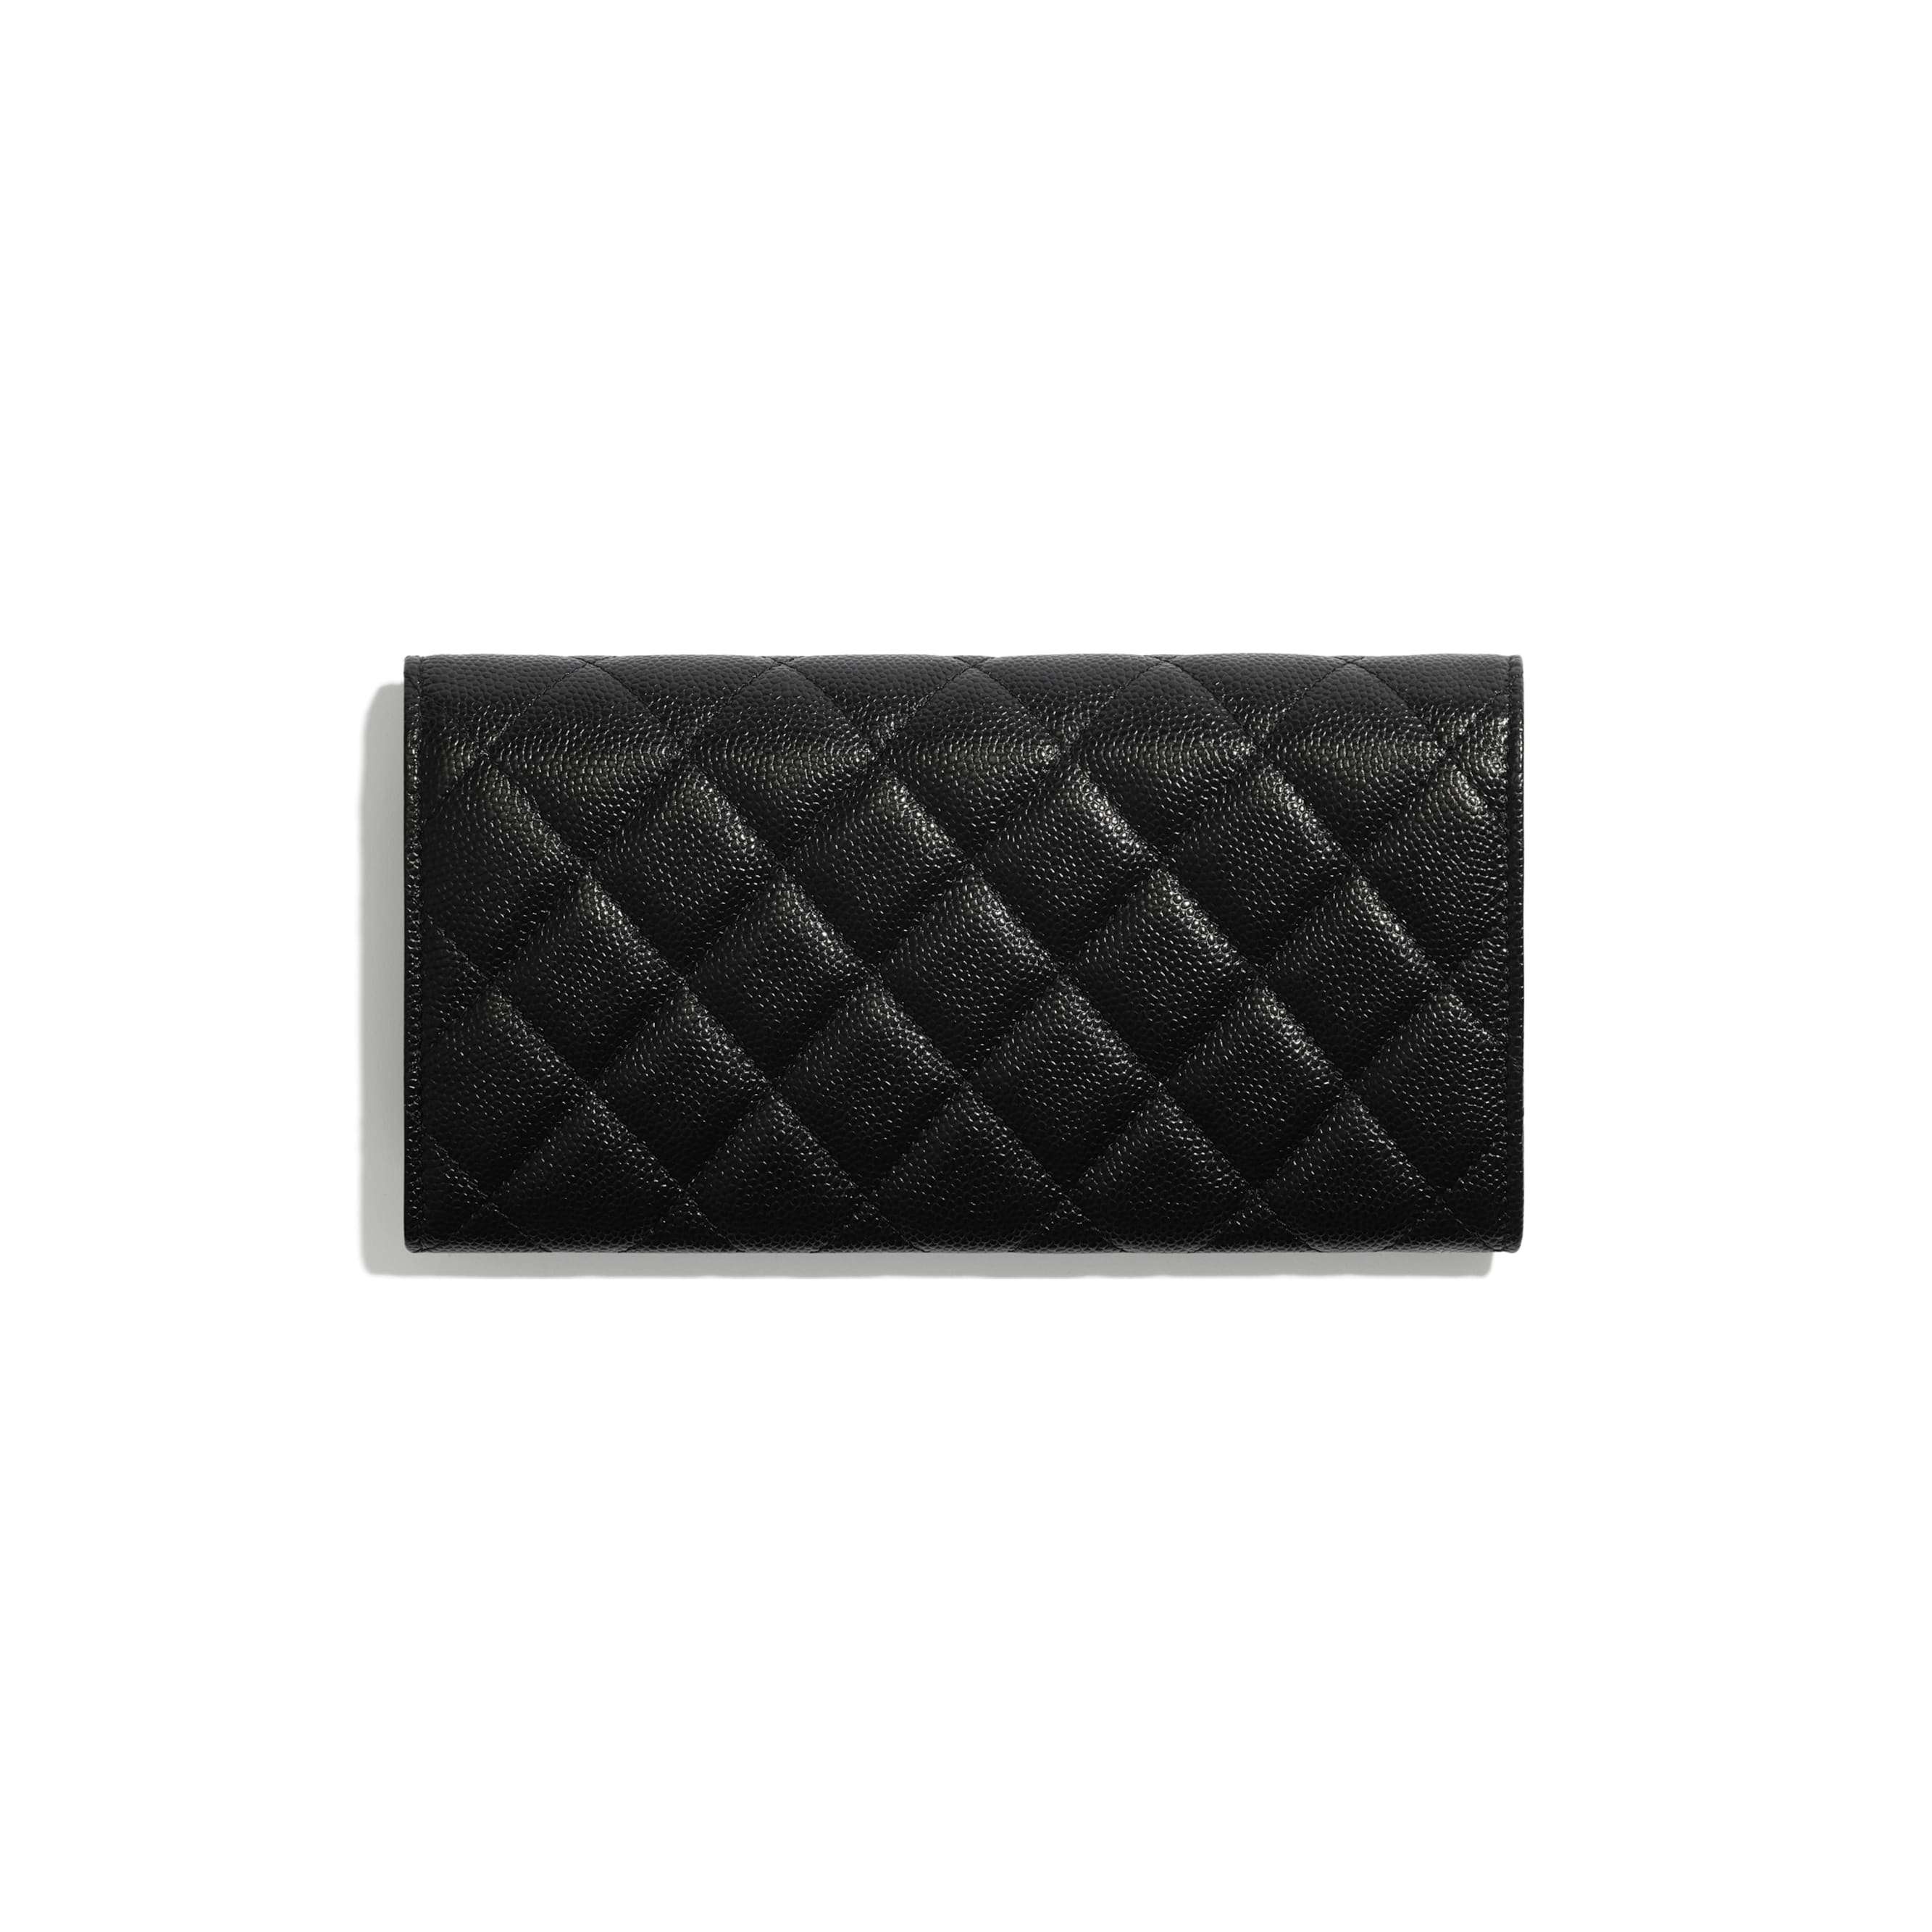 Long Flap Wallet - Black - Shiny Grained Calfskin, Gold-Tone & Lacquered Metal  - CHANEL - Alternative view - see standard sized version